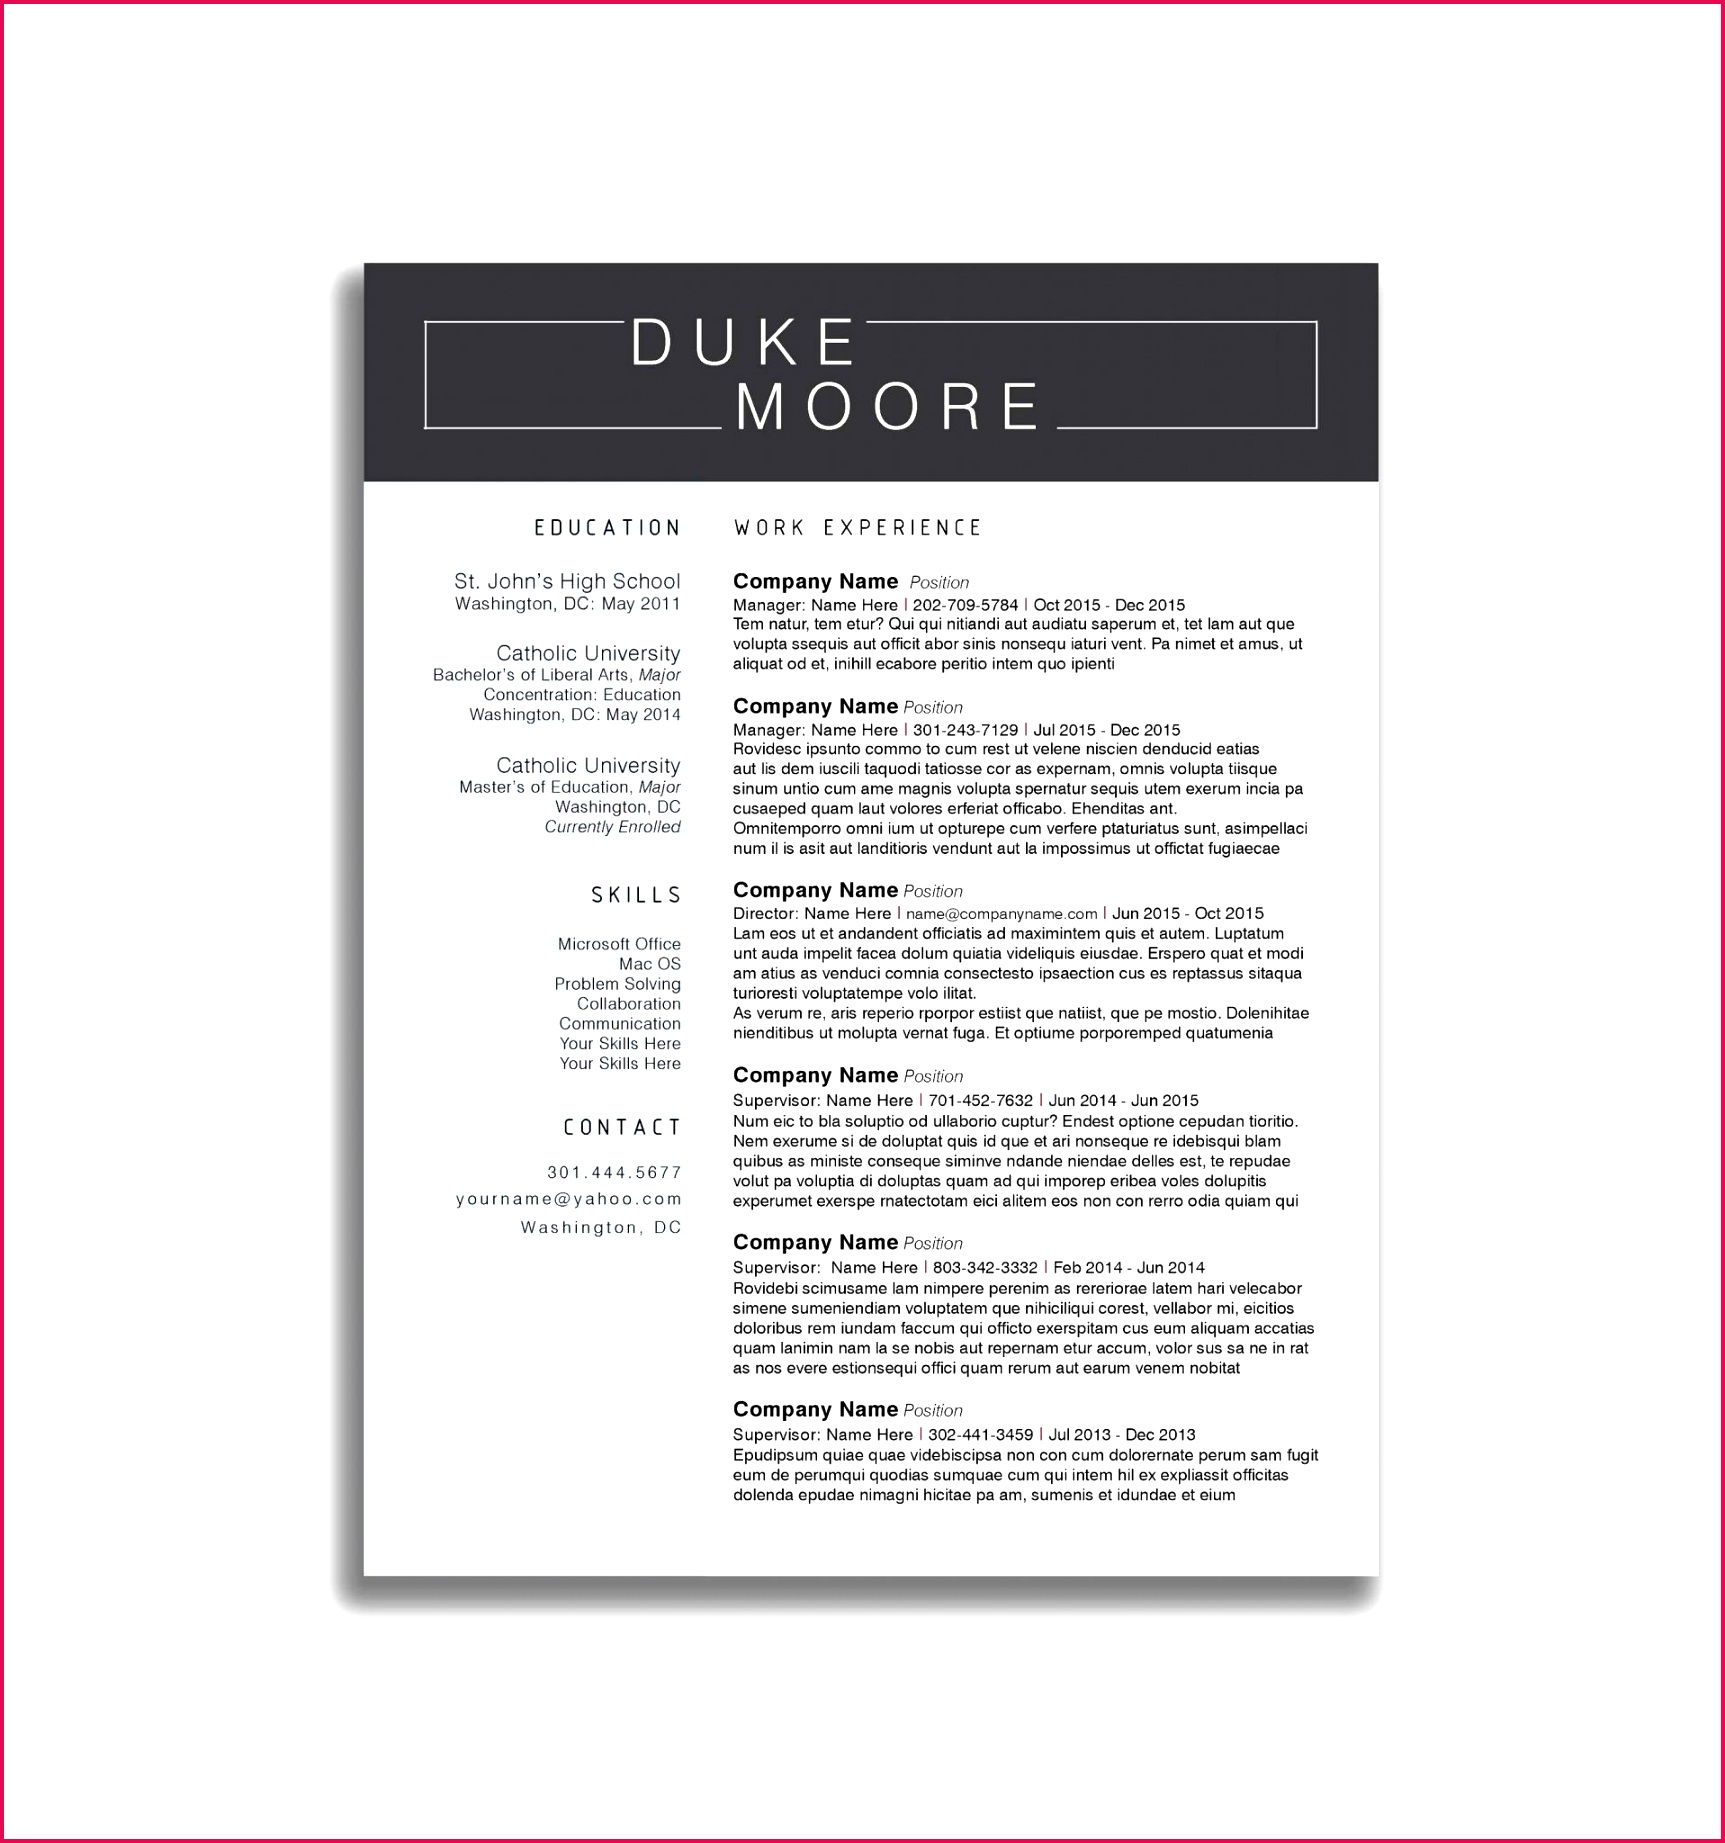 bible study certificate templates as well as how to resume template word resume templates free acting of bible study certificate templates